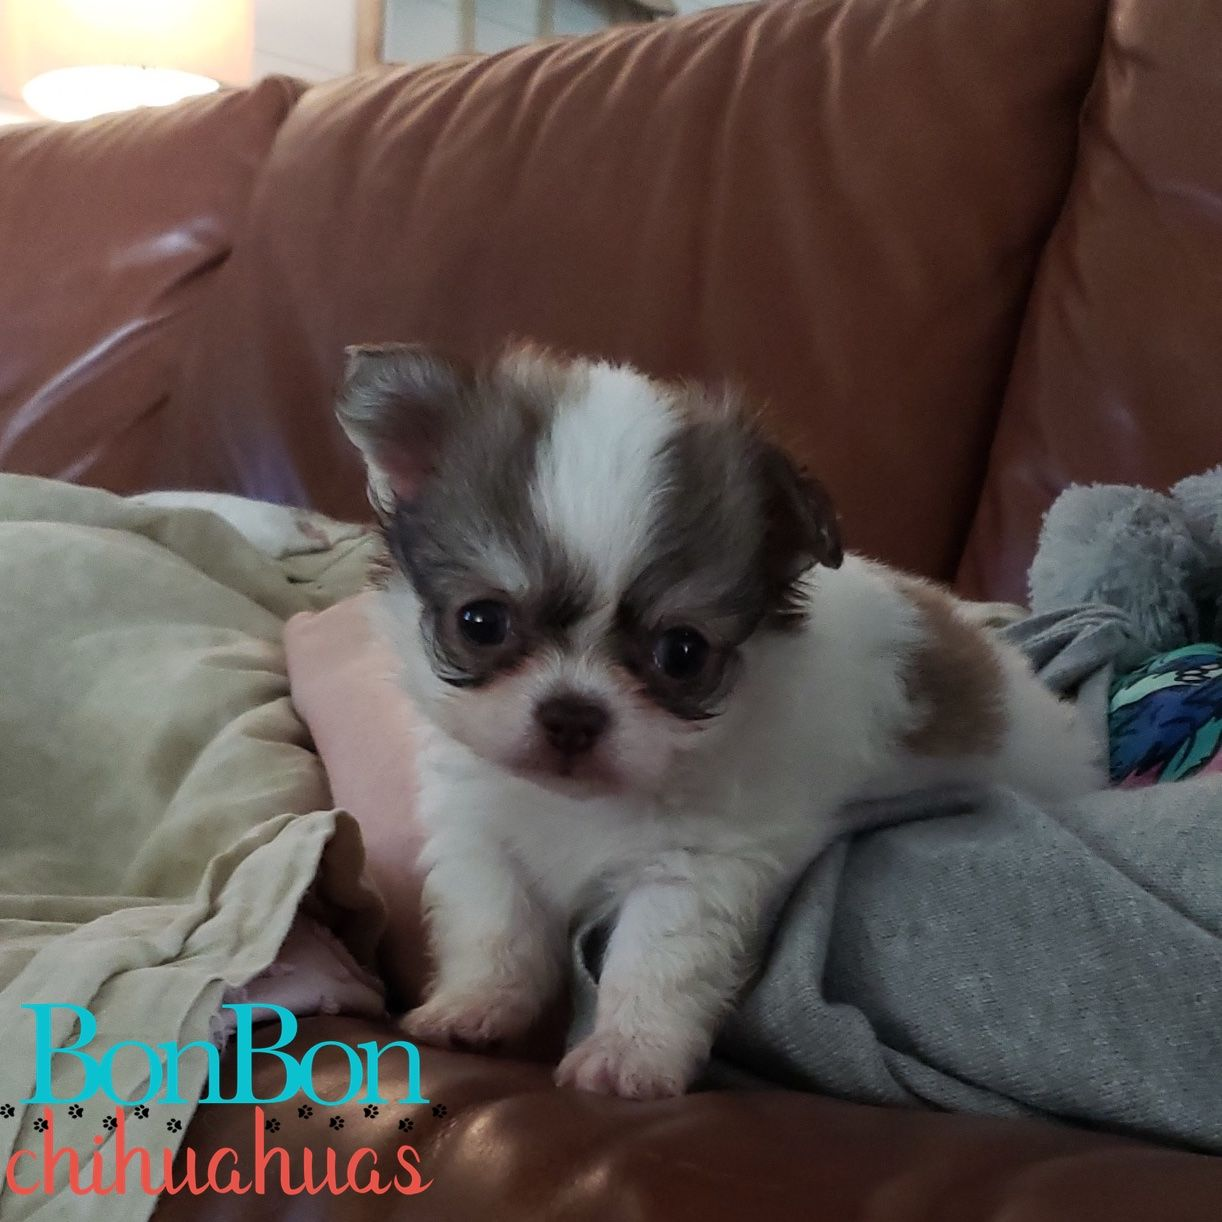 Chihuahua Puppies For Sale In 2020 Chihuahua Puppies Puppies Chihuahua Puppies For Sale